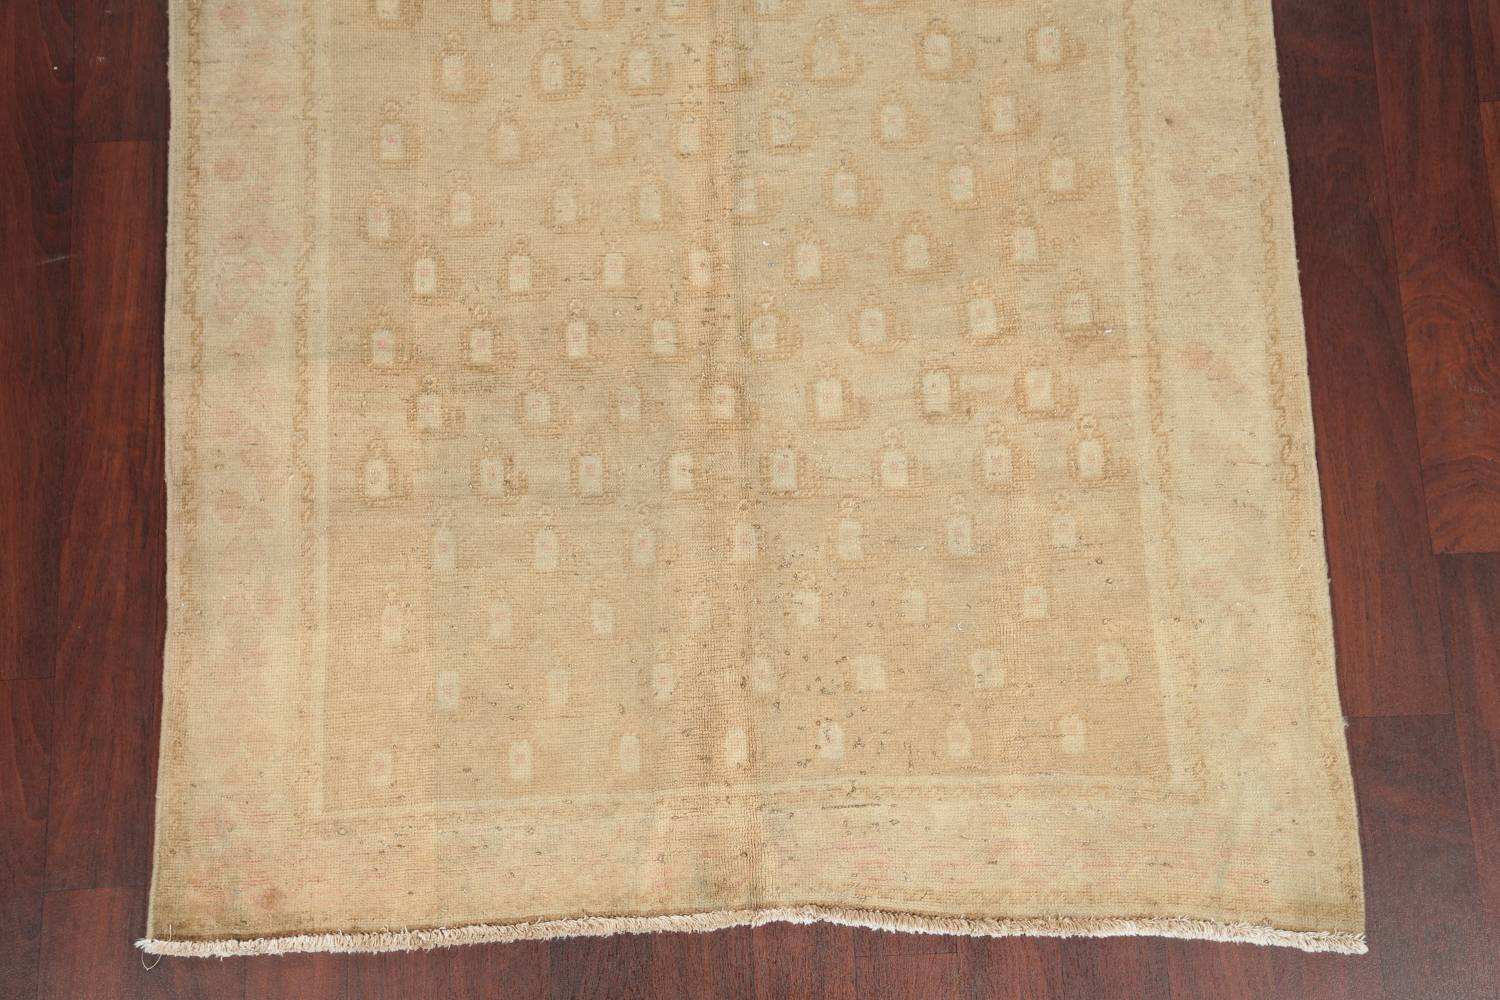 Antique Muted Gold Distressed Sarouk Persian Wool Rug 5x8 image 8